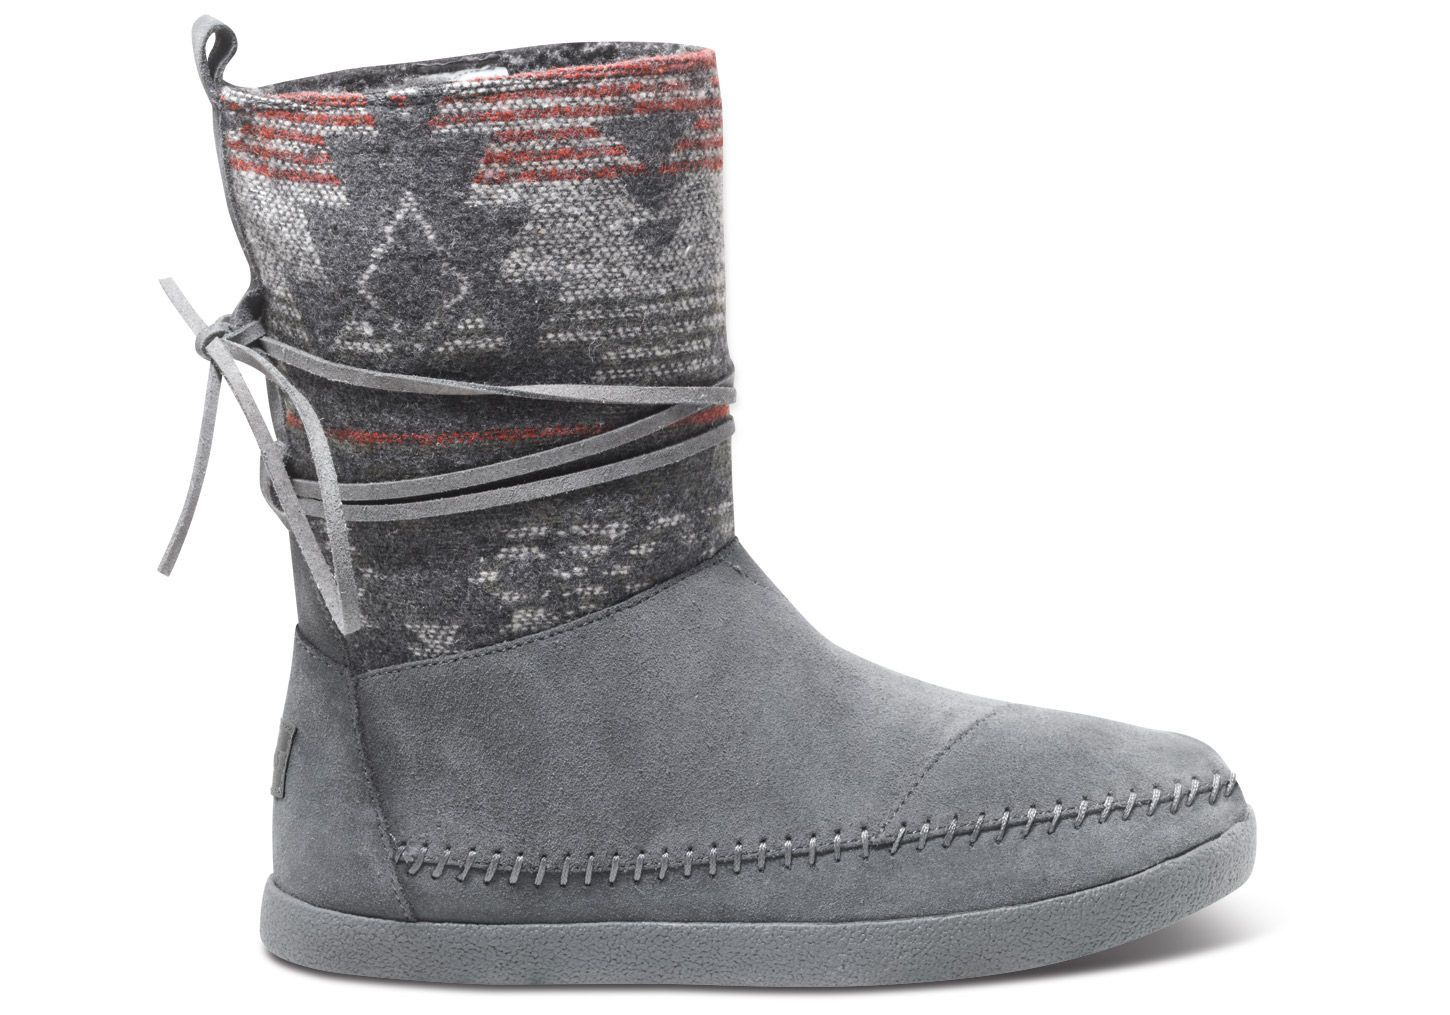 Grey Suede Jacquard Women's Nepal Boots TOMS Soooooo cute!!!!! kind of like uggs but with the aztec print, and a different style SO CUTE!!! would LOVE these ...